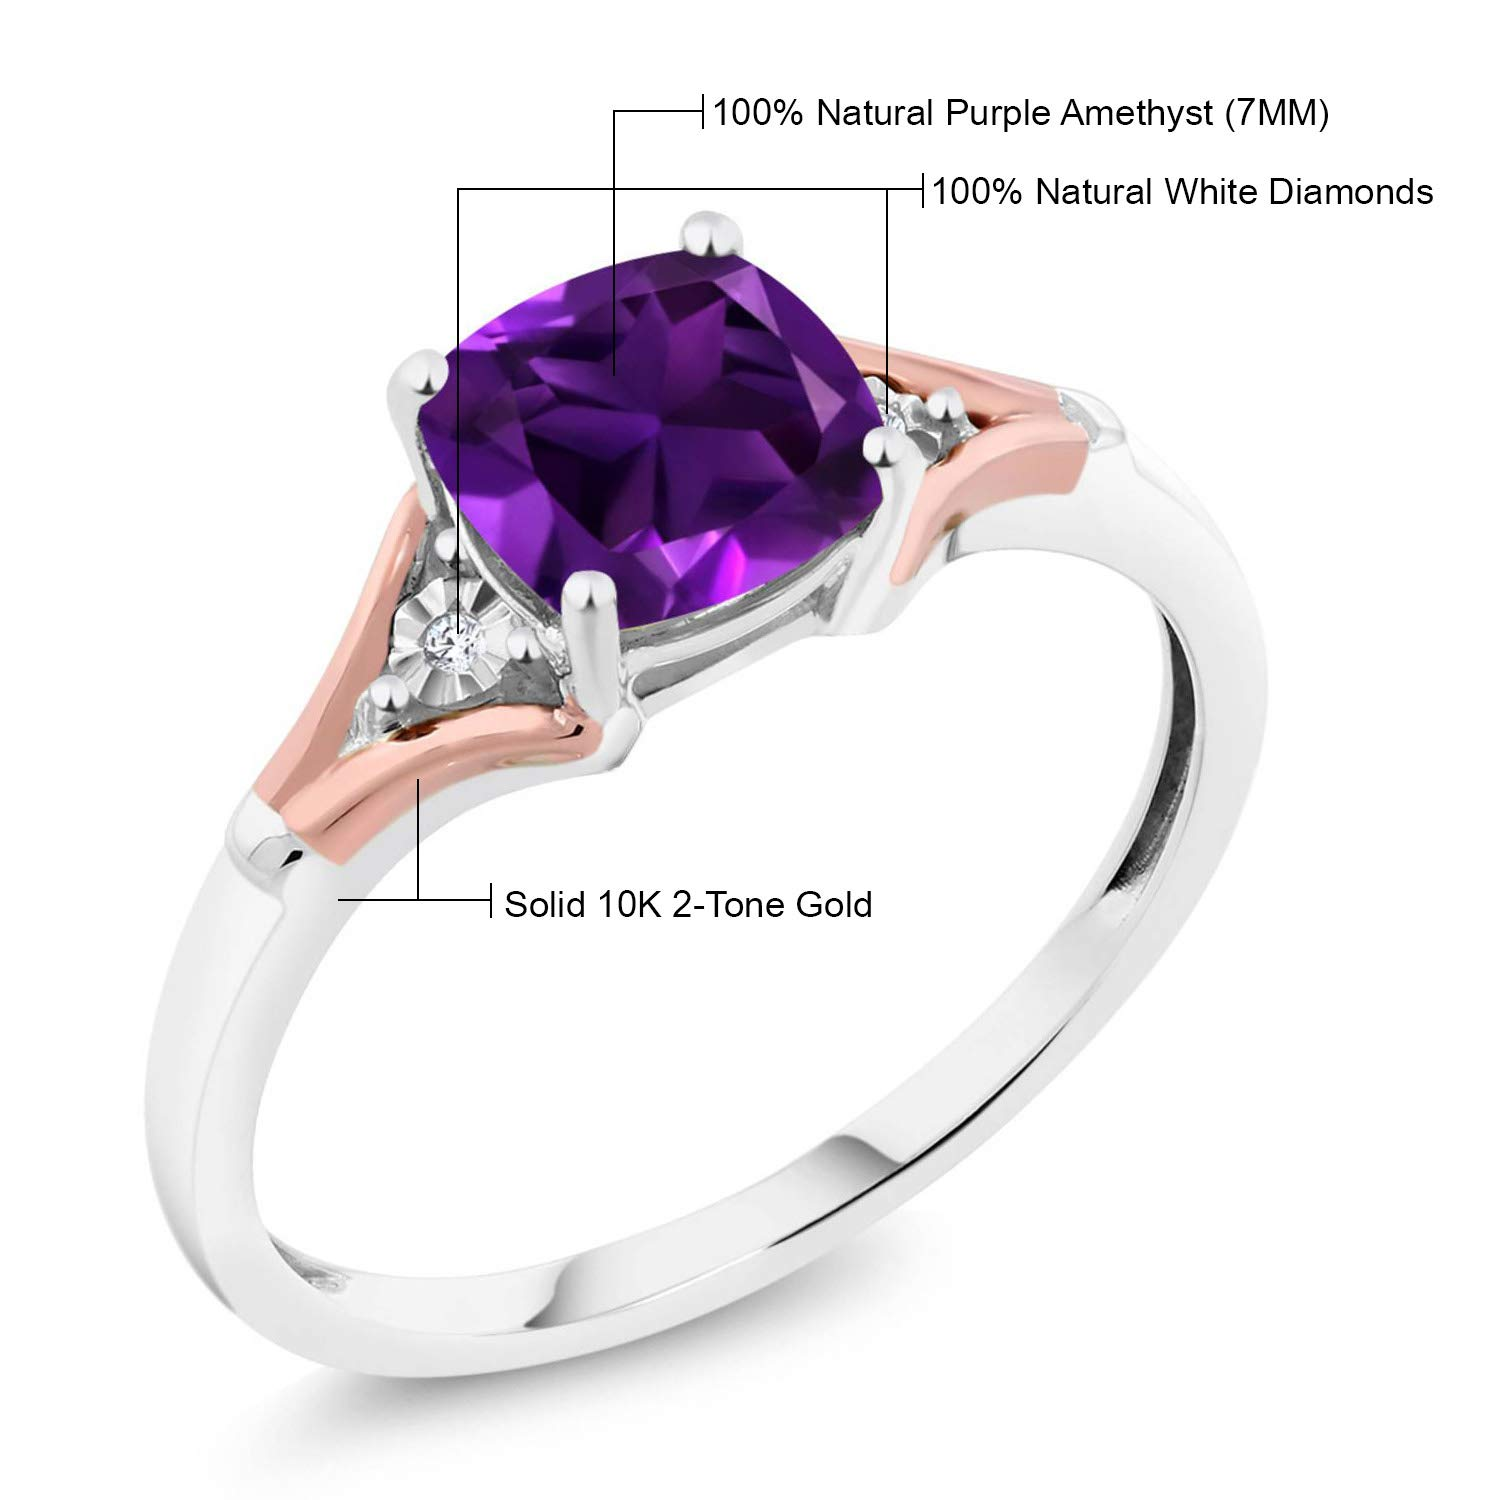 Gem Stone King 10K 2-Tone Gold Purple Amethyst and Diamond Women s Ring 1.40 Ct Cushion Cut Available 5,6,7,8,9